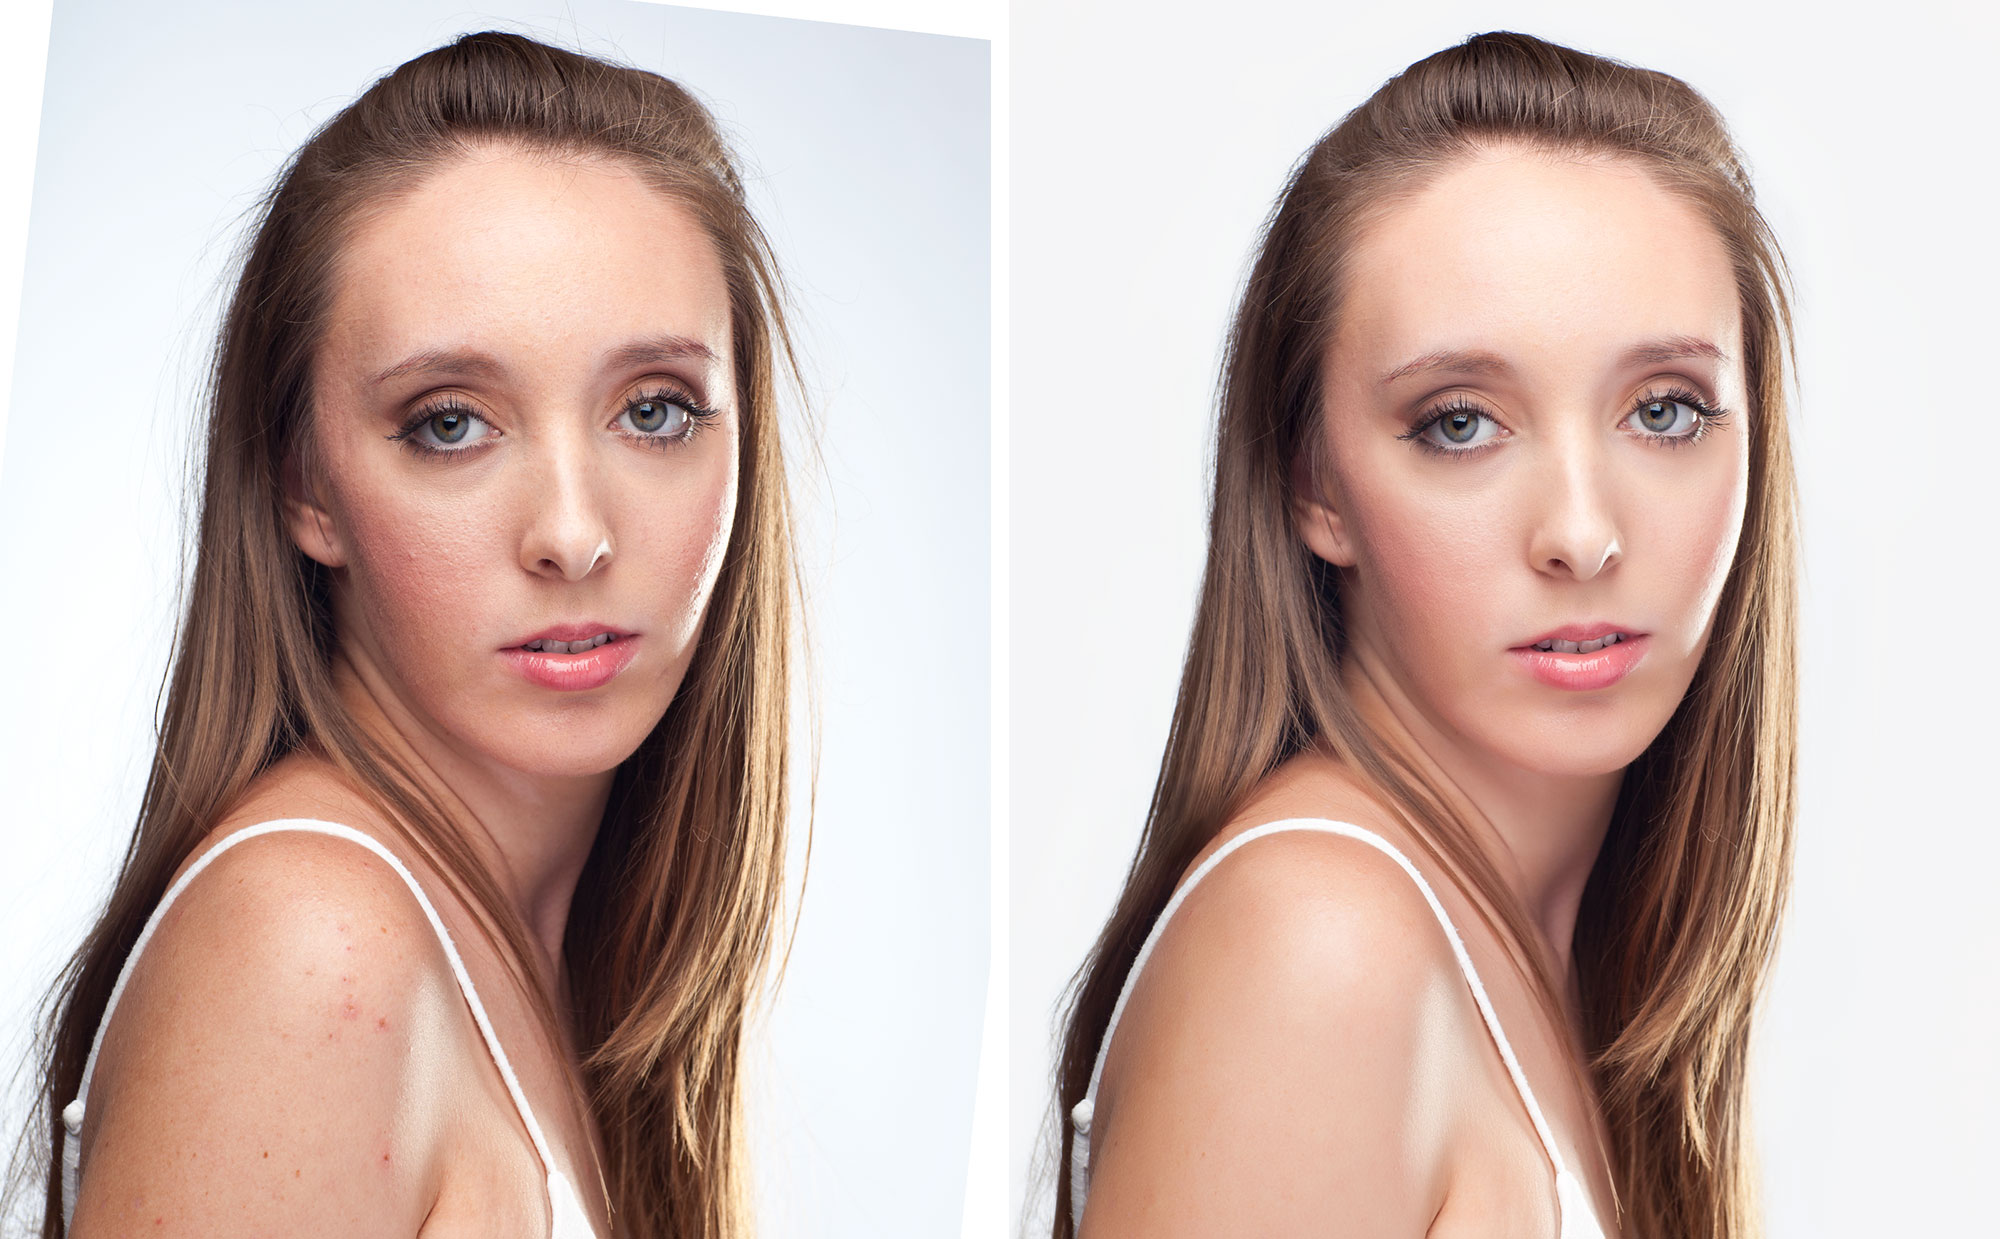 Professional Retouching I: Glamour Portrait #1 by Alex Kay